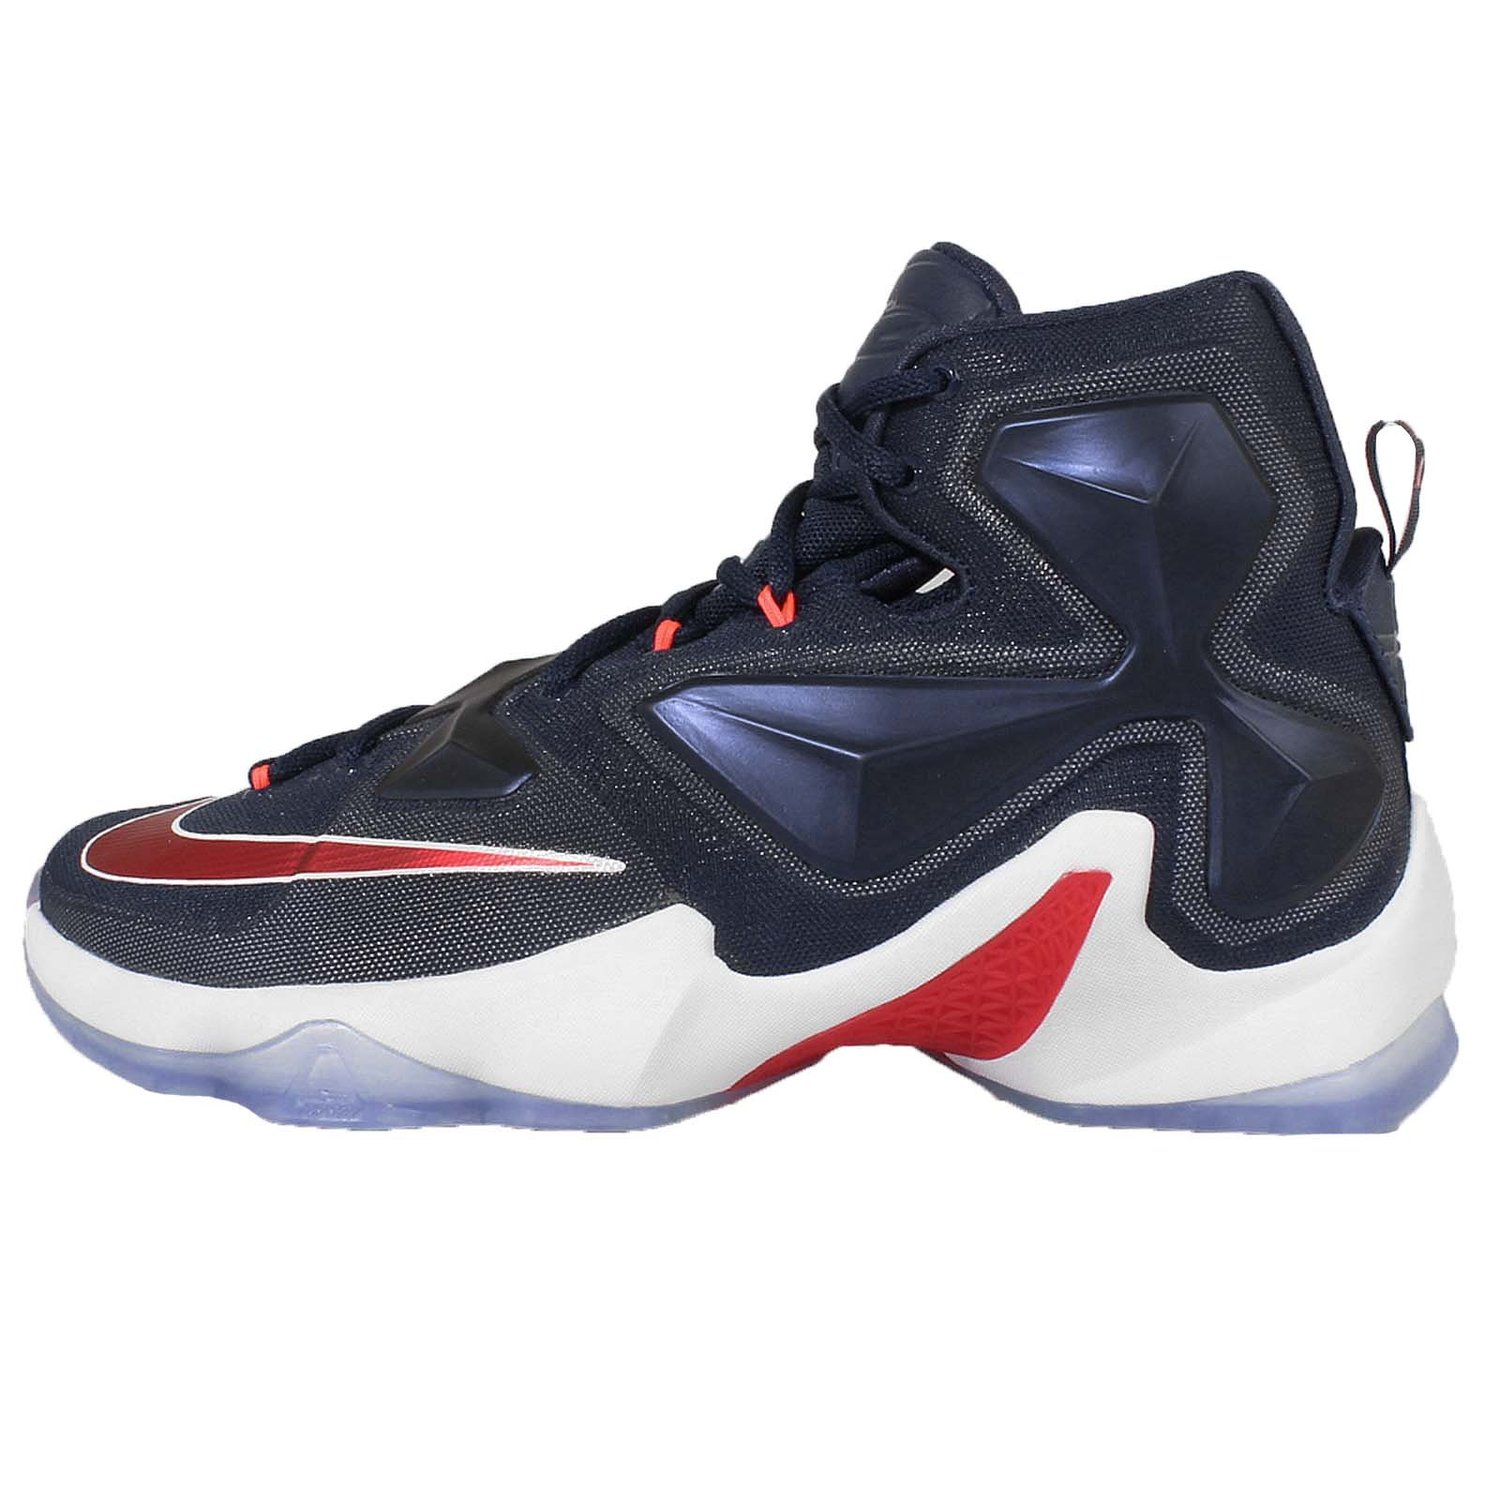 new arrival f2c3f a2dc8 Get Quotations · Nike Men s Lebron XIII EP, USA-MID NAVY UNIVERSITY  RED-WHITE-